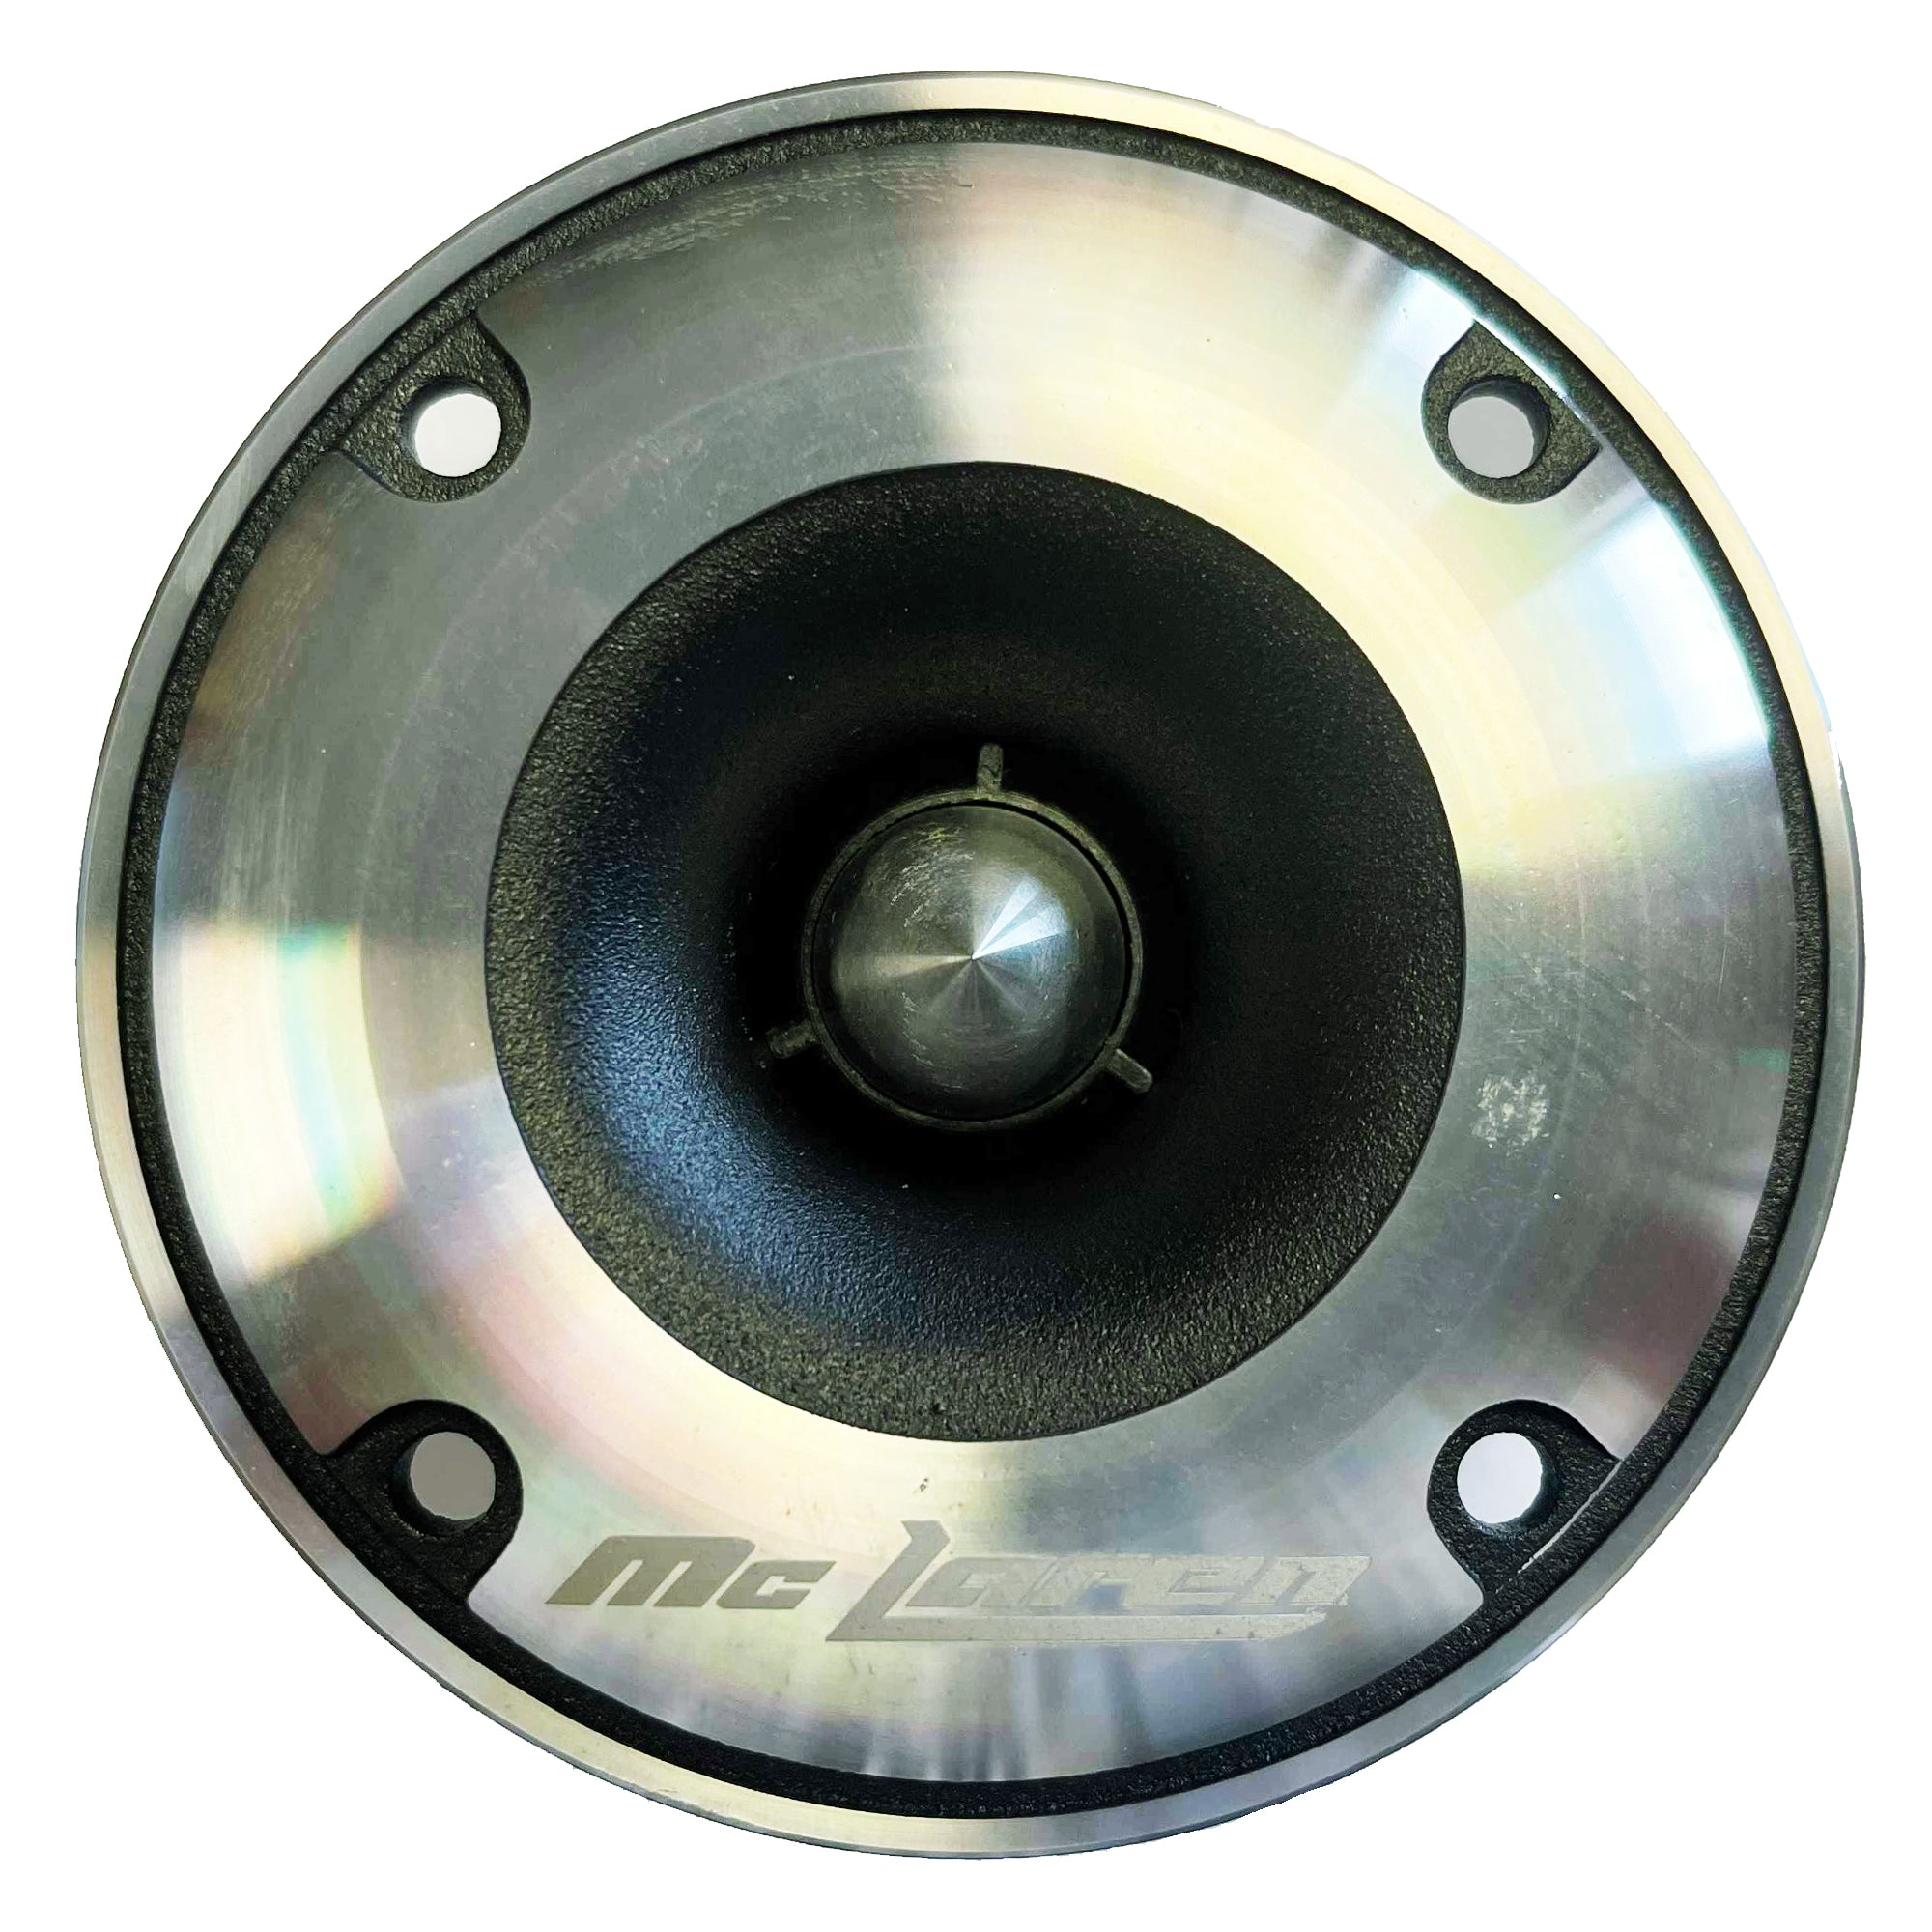 McLaren Audio MLT-3 SuperTweeters (sold individually)